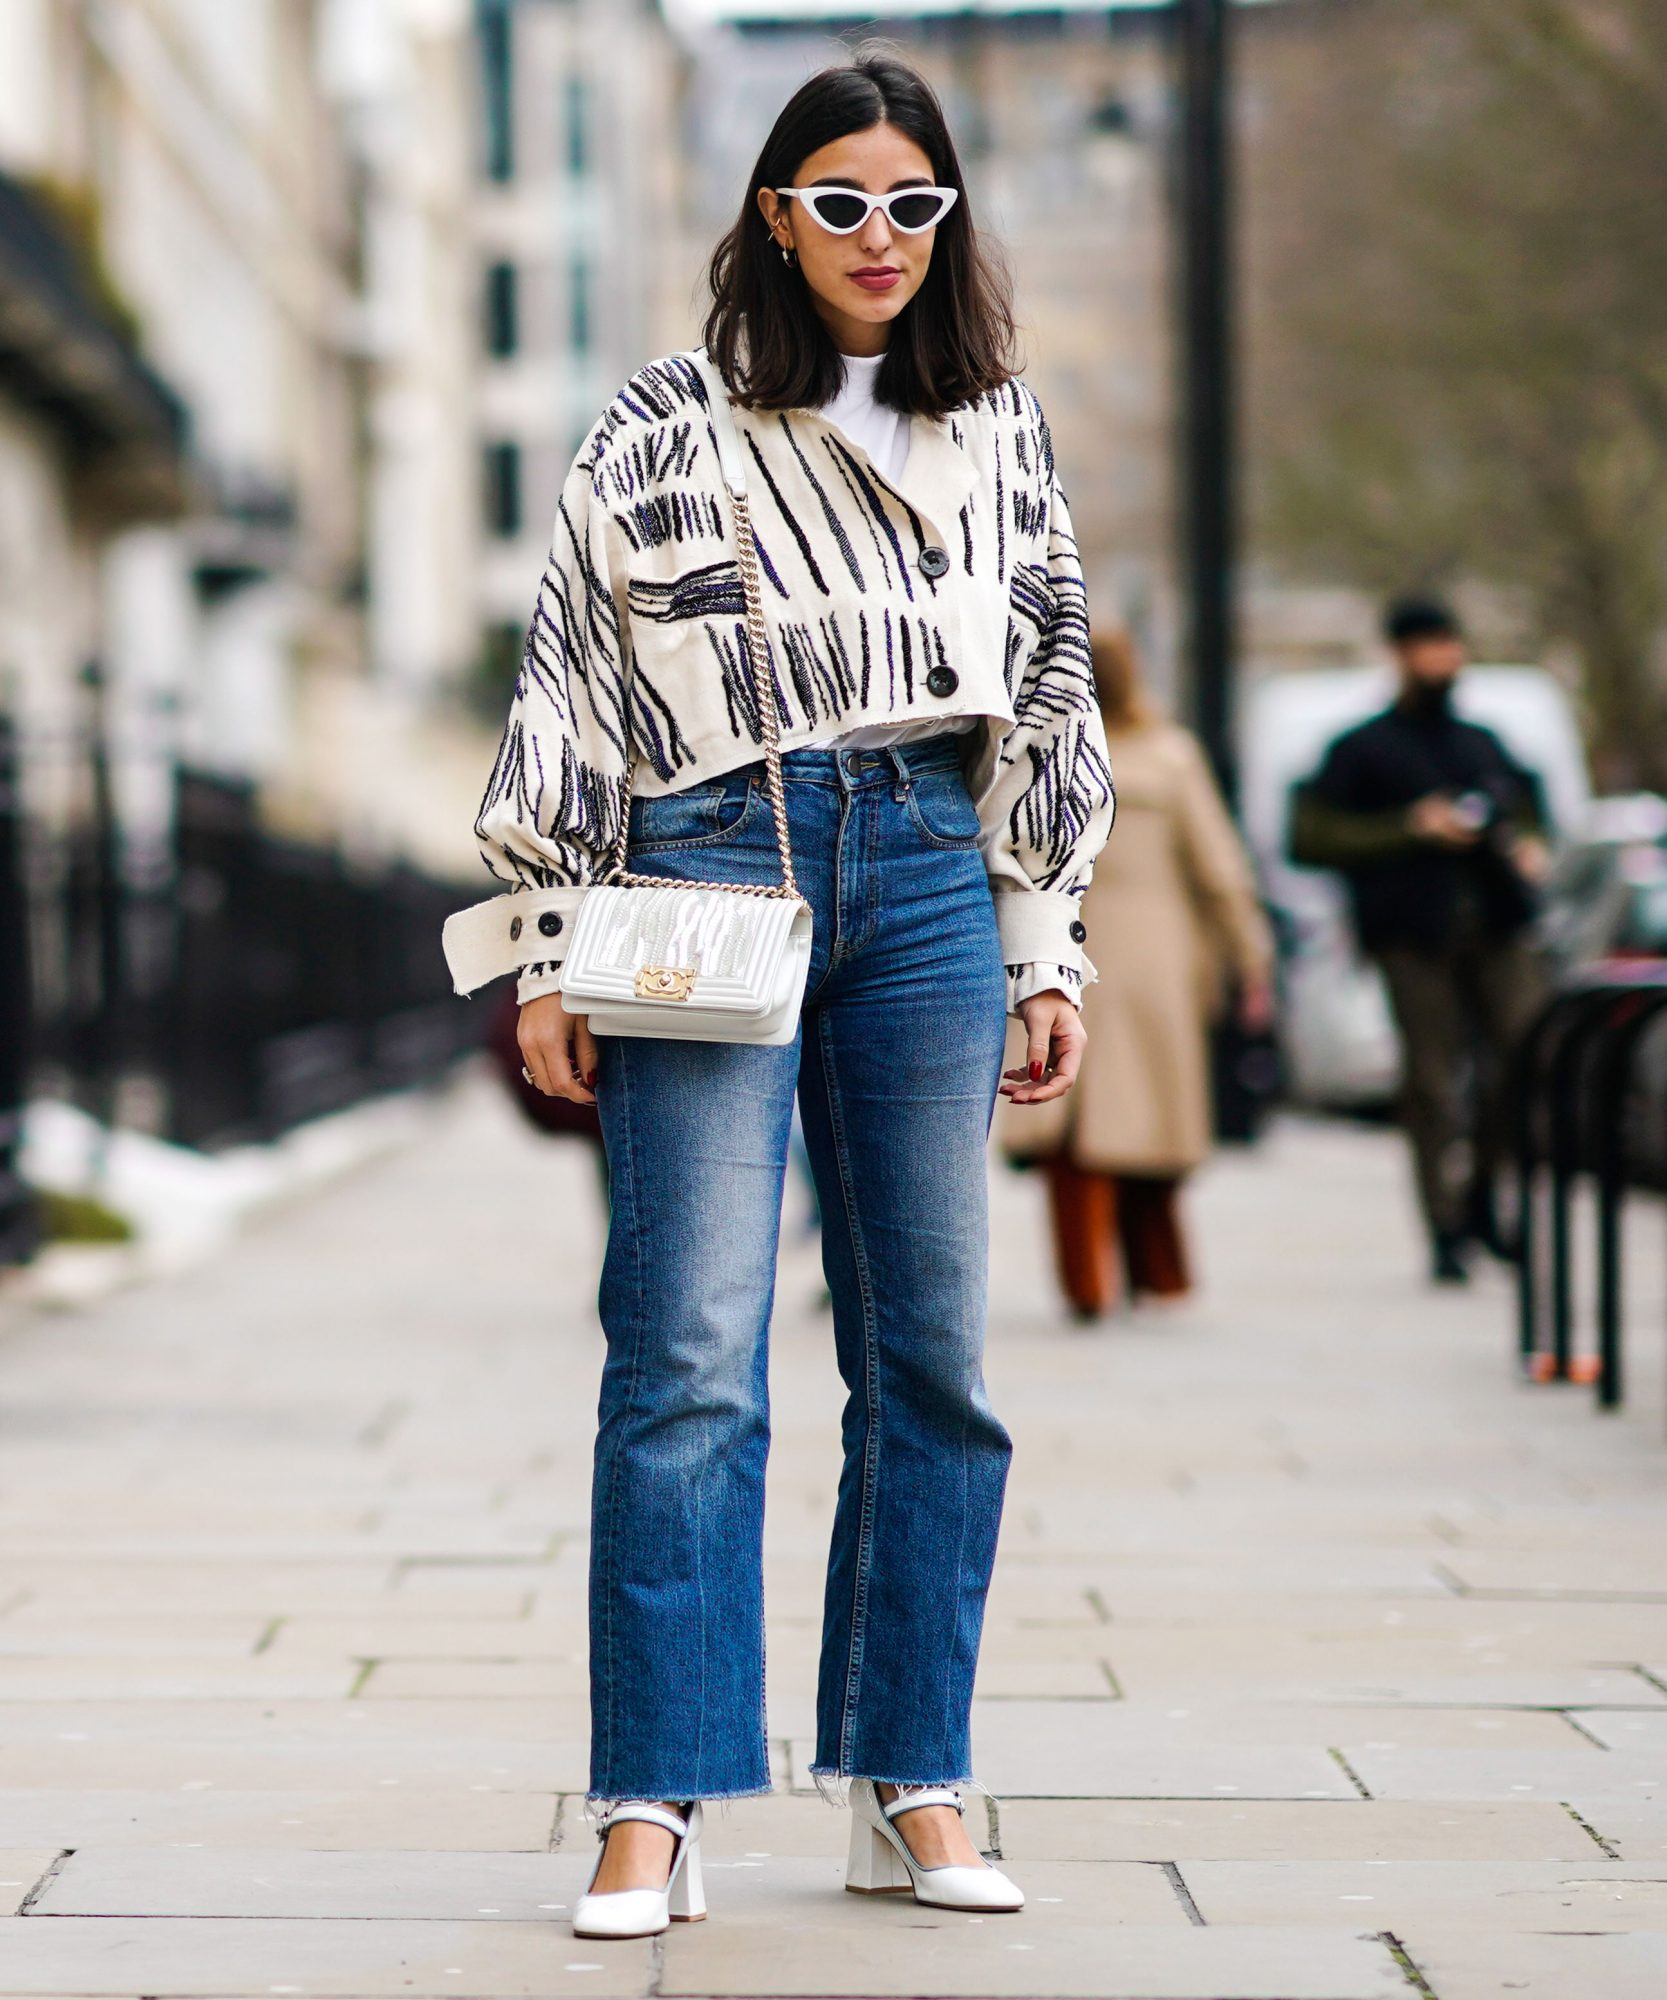 12 High-Waist Jeans That Will Give You Your Best Booty Ever